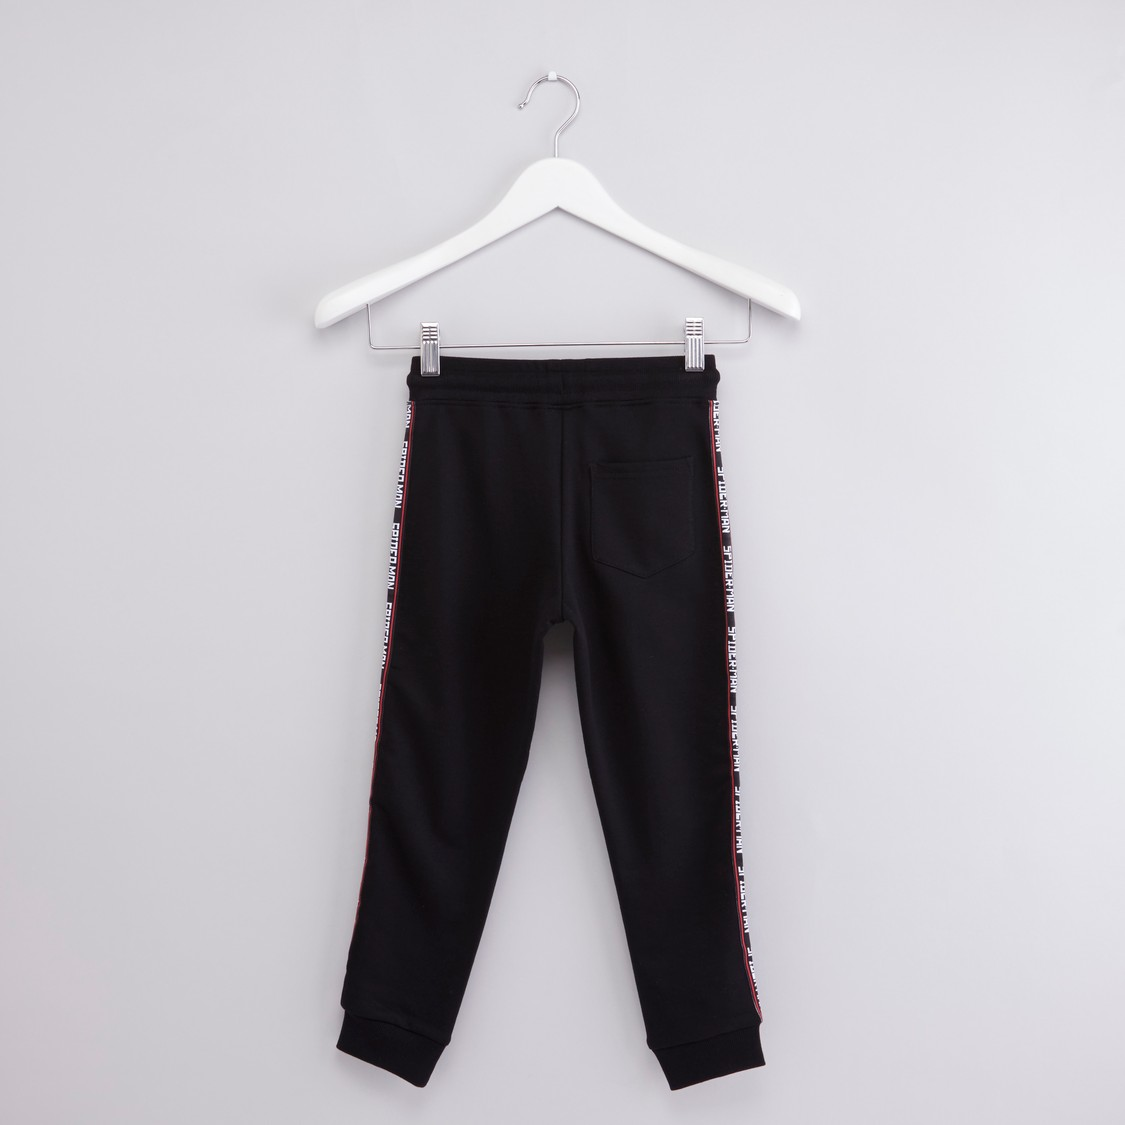 Spider-Man Printed Jog Pants with Drawstring and Pocket Detail